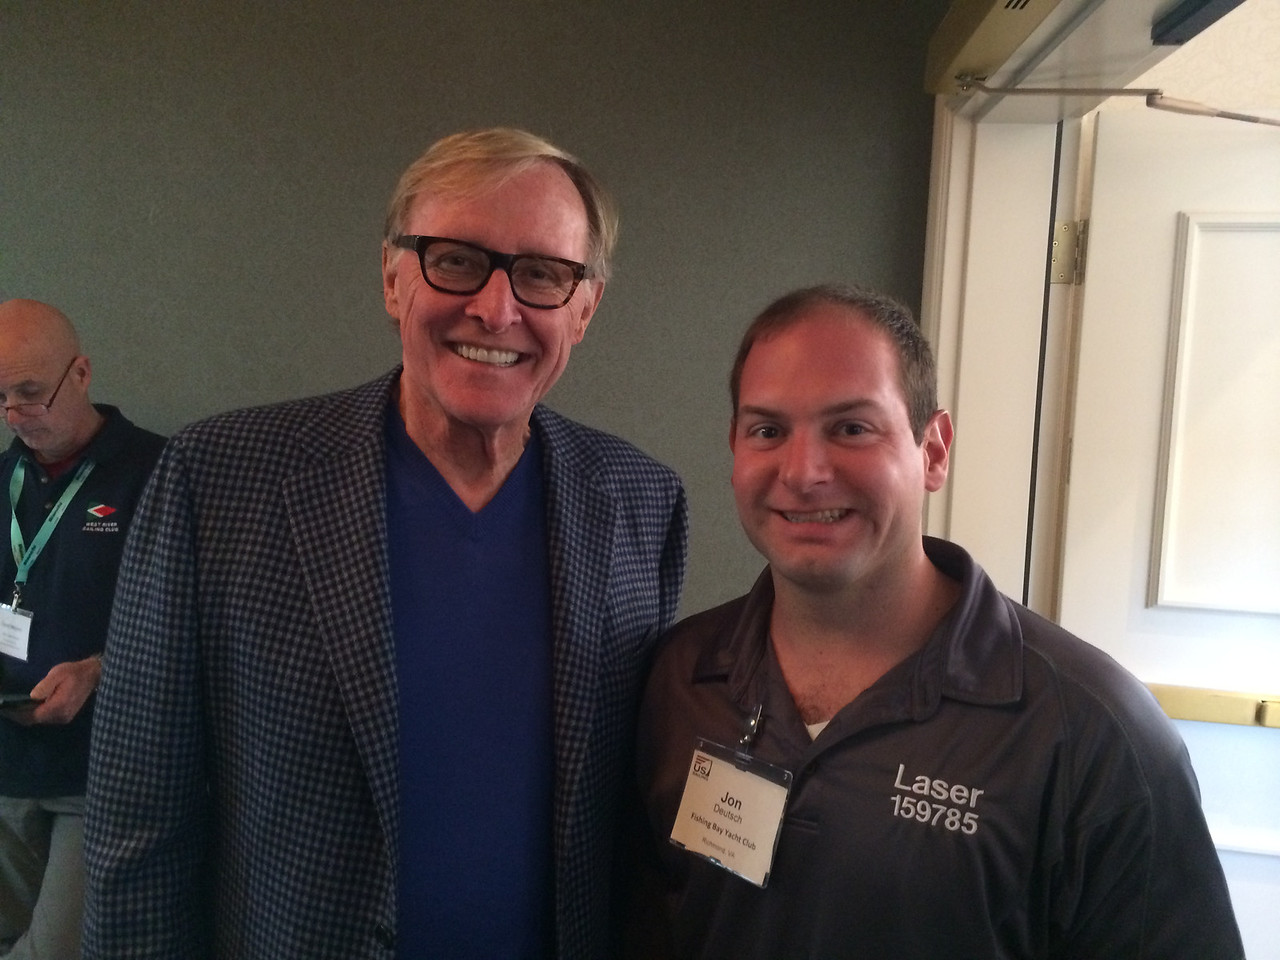 2/8 Jon with Silicon Graphics/Netscape Founder James Clark